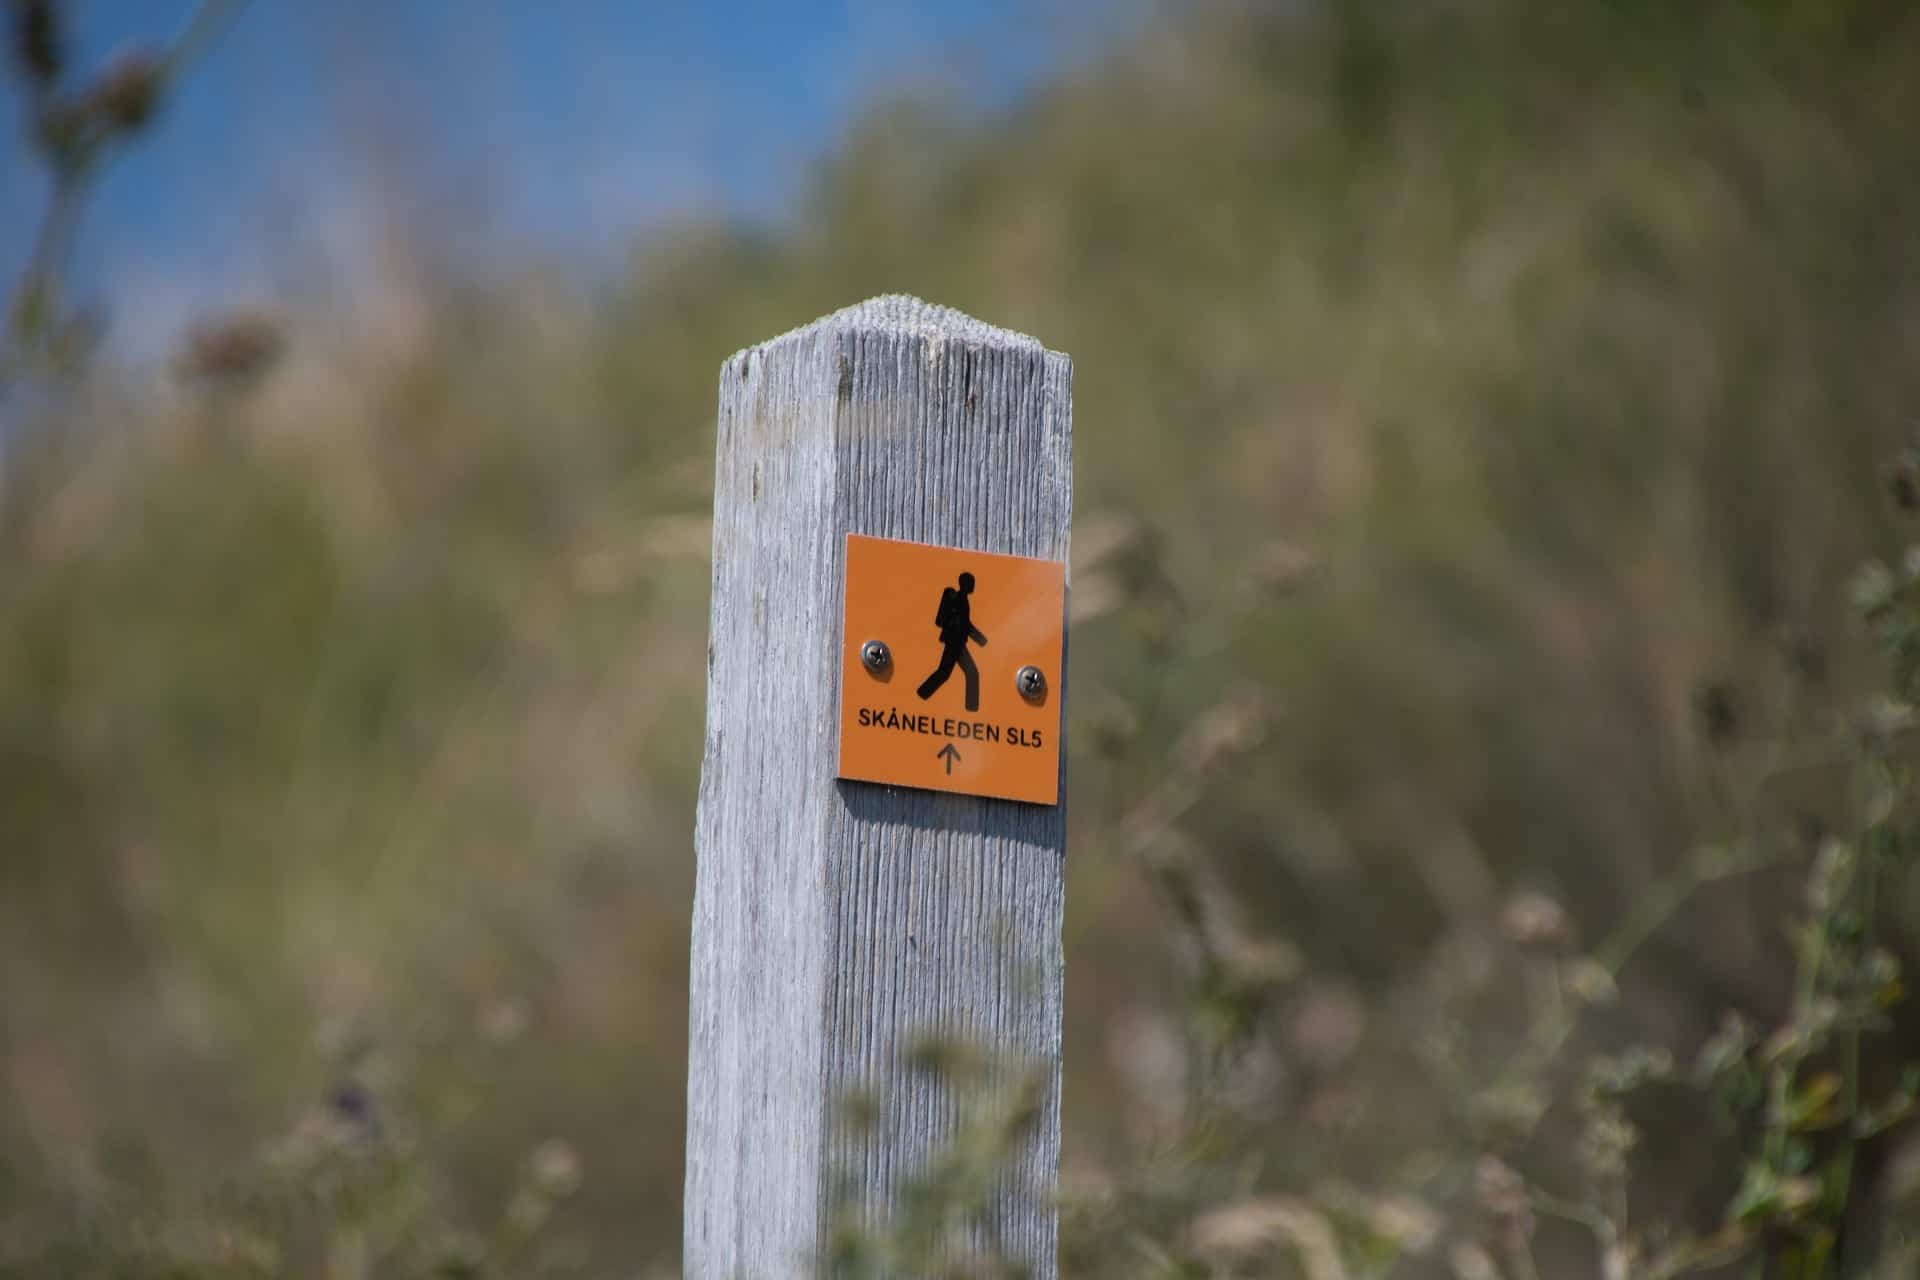 Almost all hiking trails are very well marked, so you won't get lost quickly